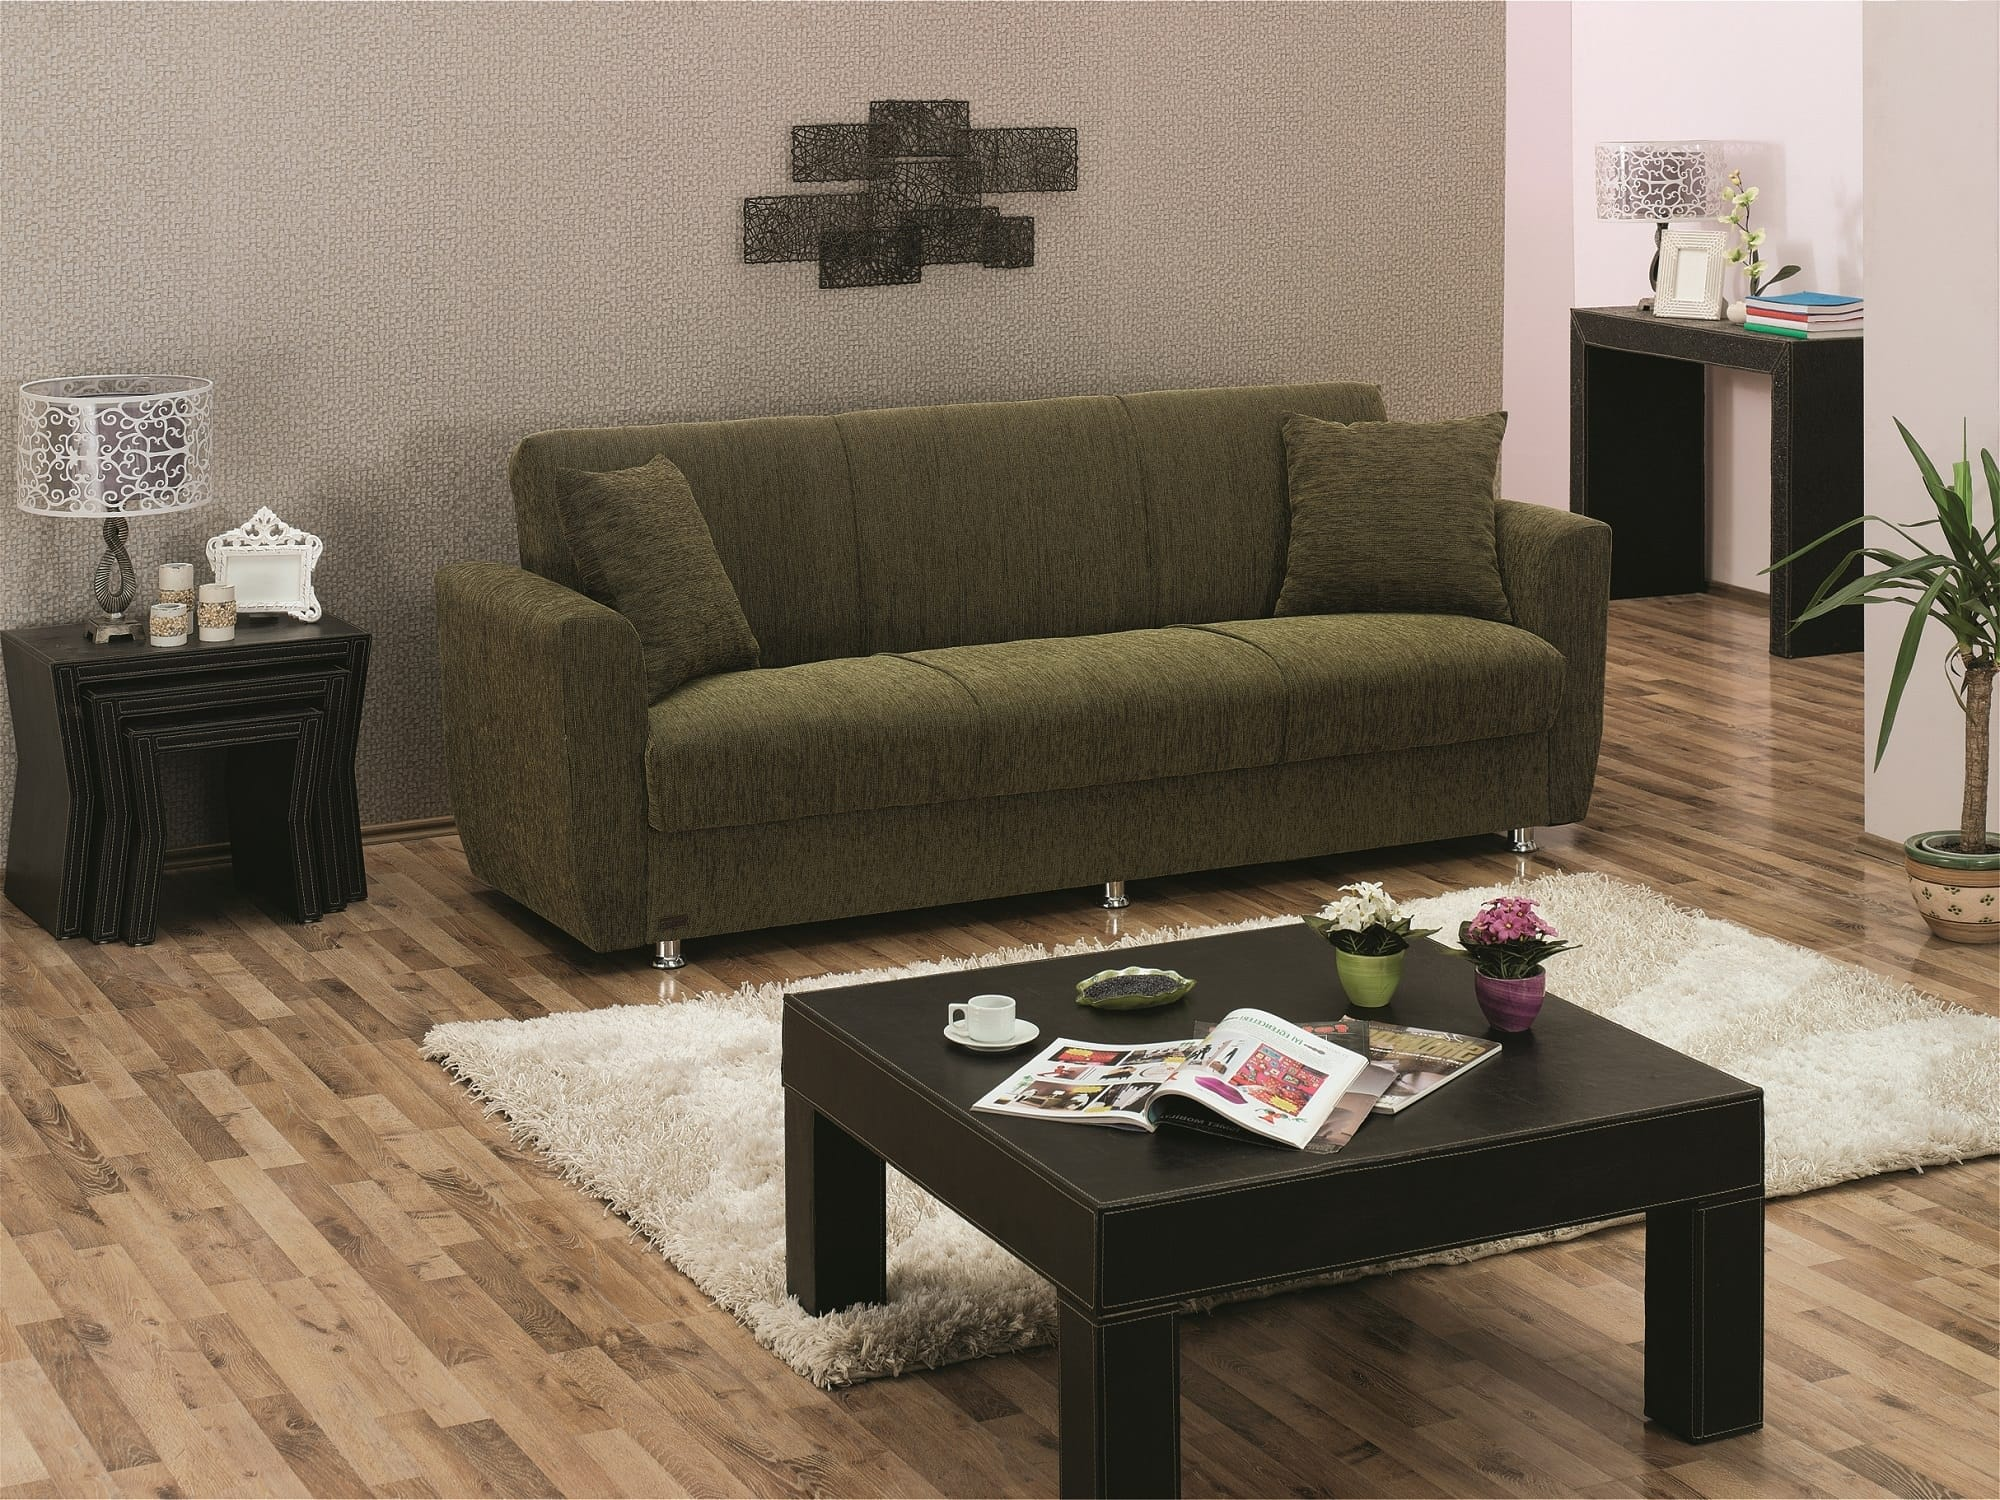 Edison sofa bed by empire furniture usa for Divan furniture usa